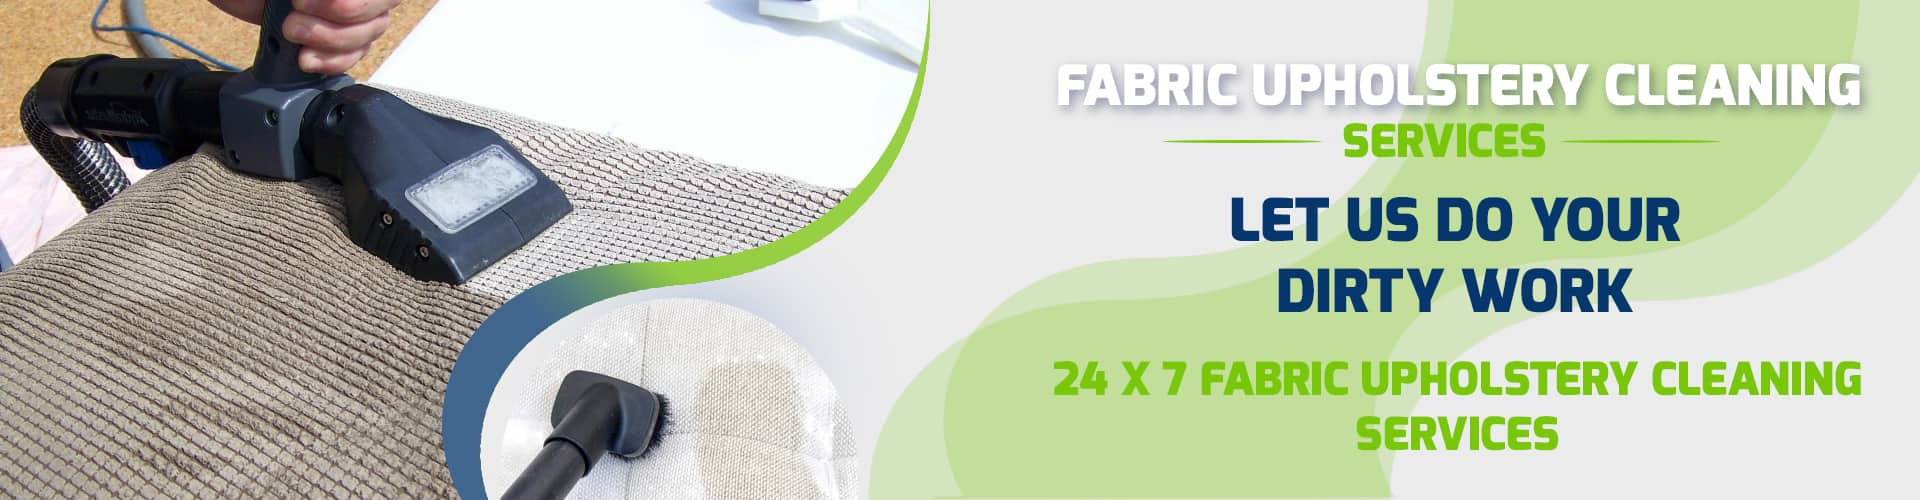 Fabric Upholstery Cleaning Services